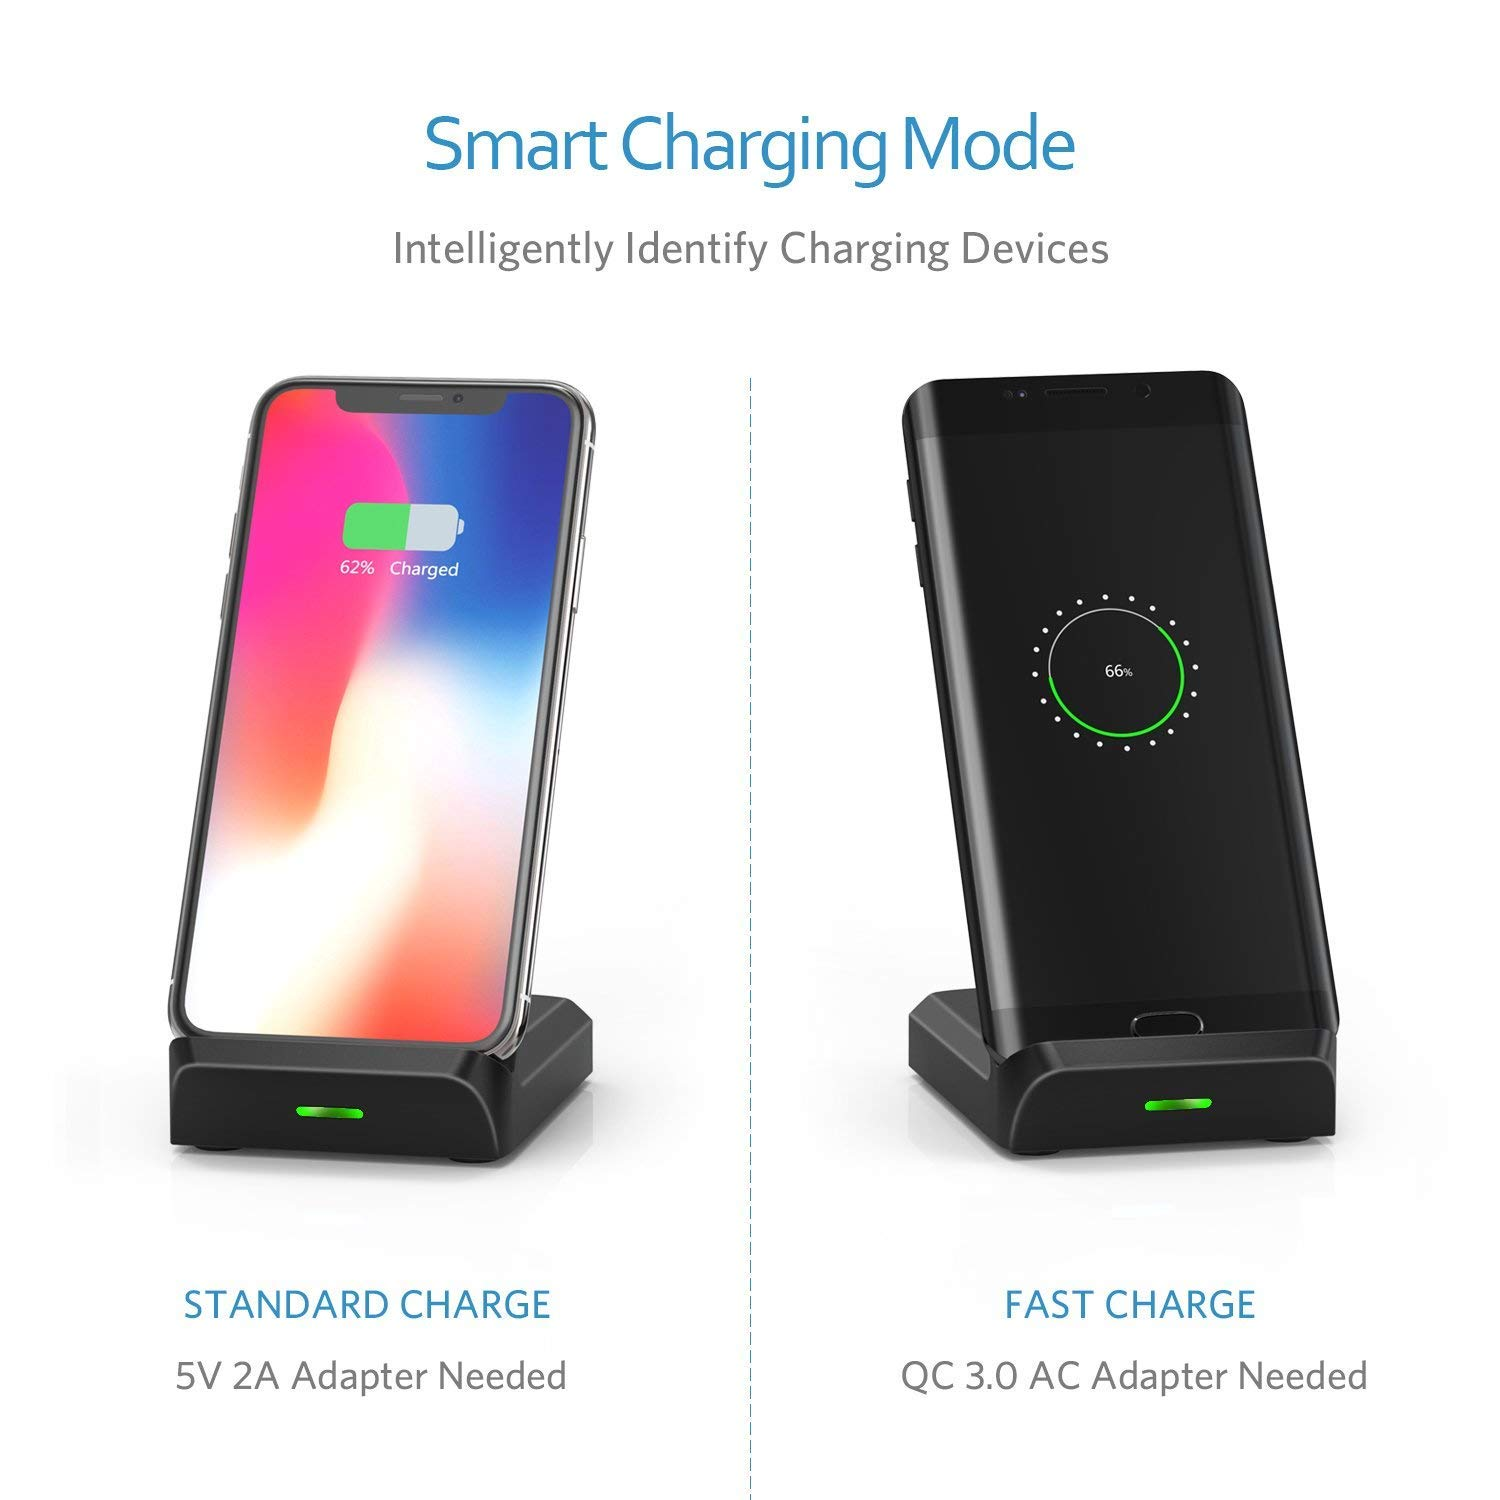 Wireless Charger, 10W Qi Ladestation mit Lüfter Kabelloses Leistungsstarkes Induktives Ladegerät kompatibel zu Samsung S9/S8/S8+/S7/S6/Edge/Plus/Note, iPhone 8/iPhone 8 Plus/iPhone X, Nexus, HTC, LG usw.